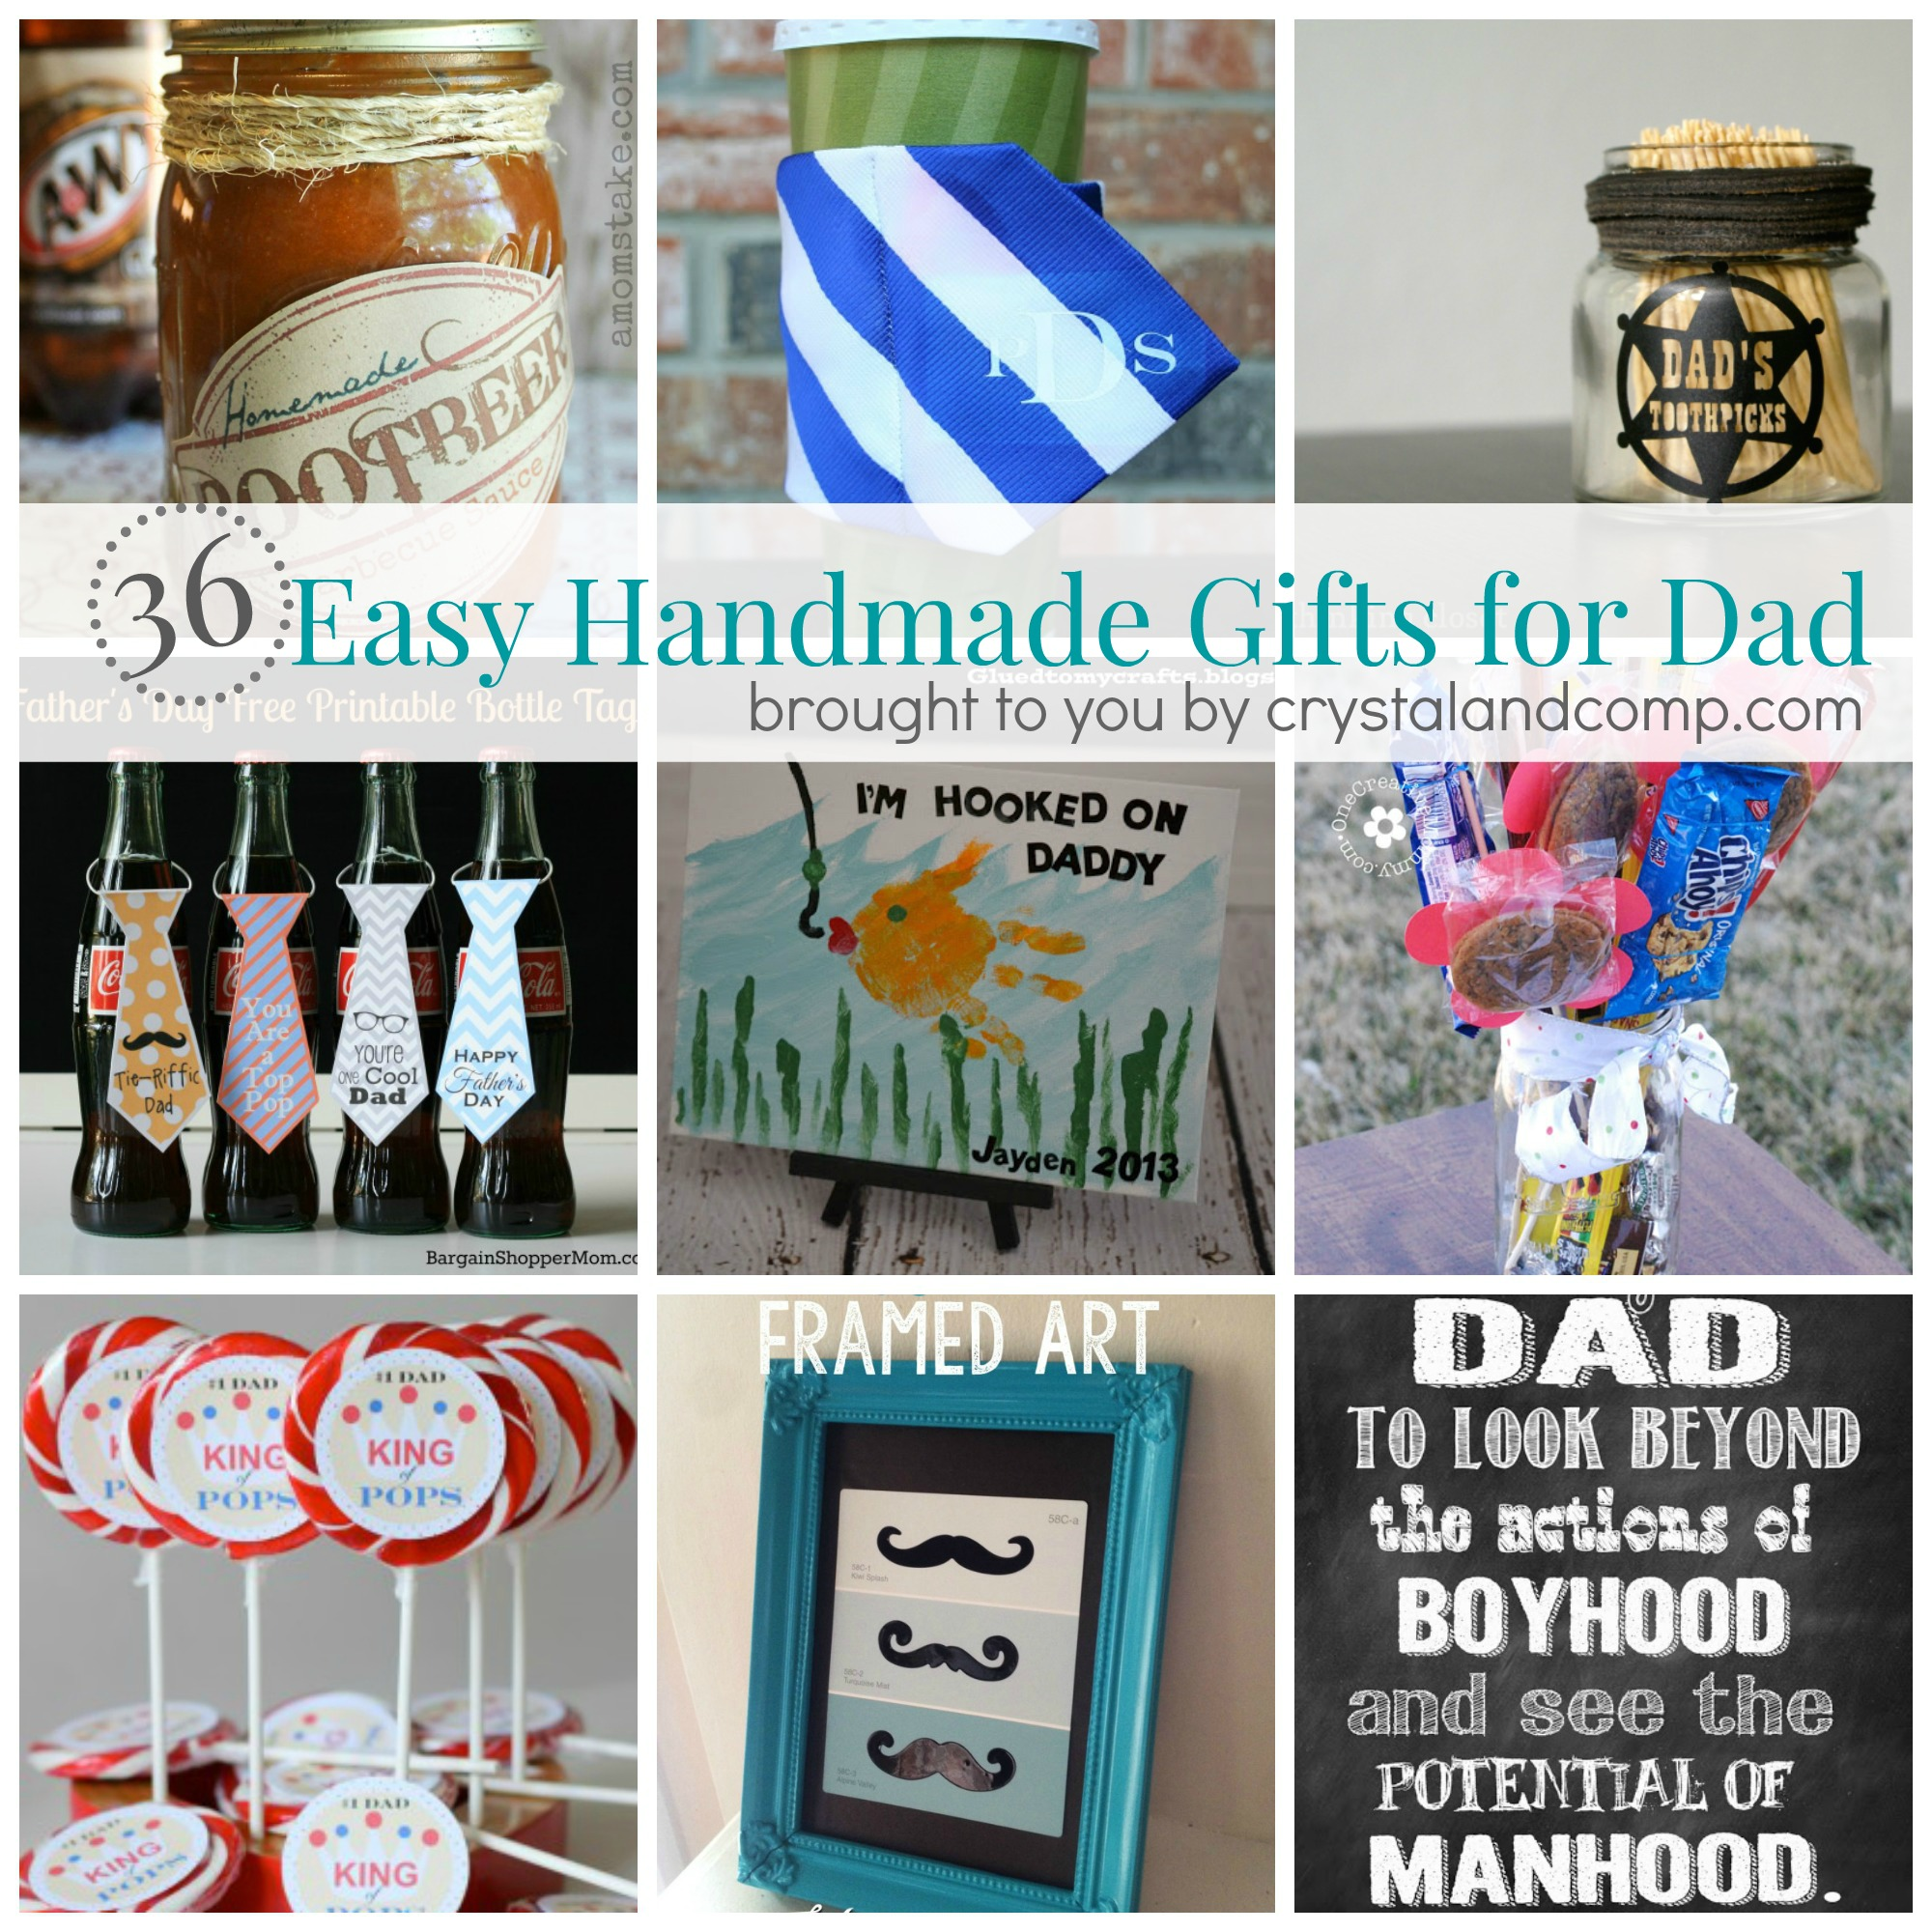 36 Easy Handmade Gift Ideas For Dad Crystalandcomp Com